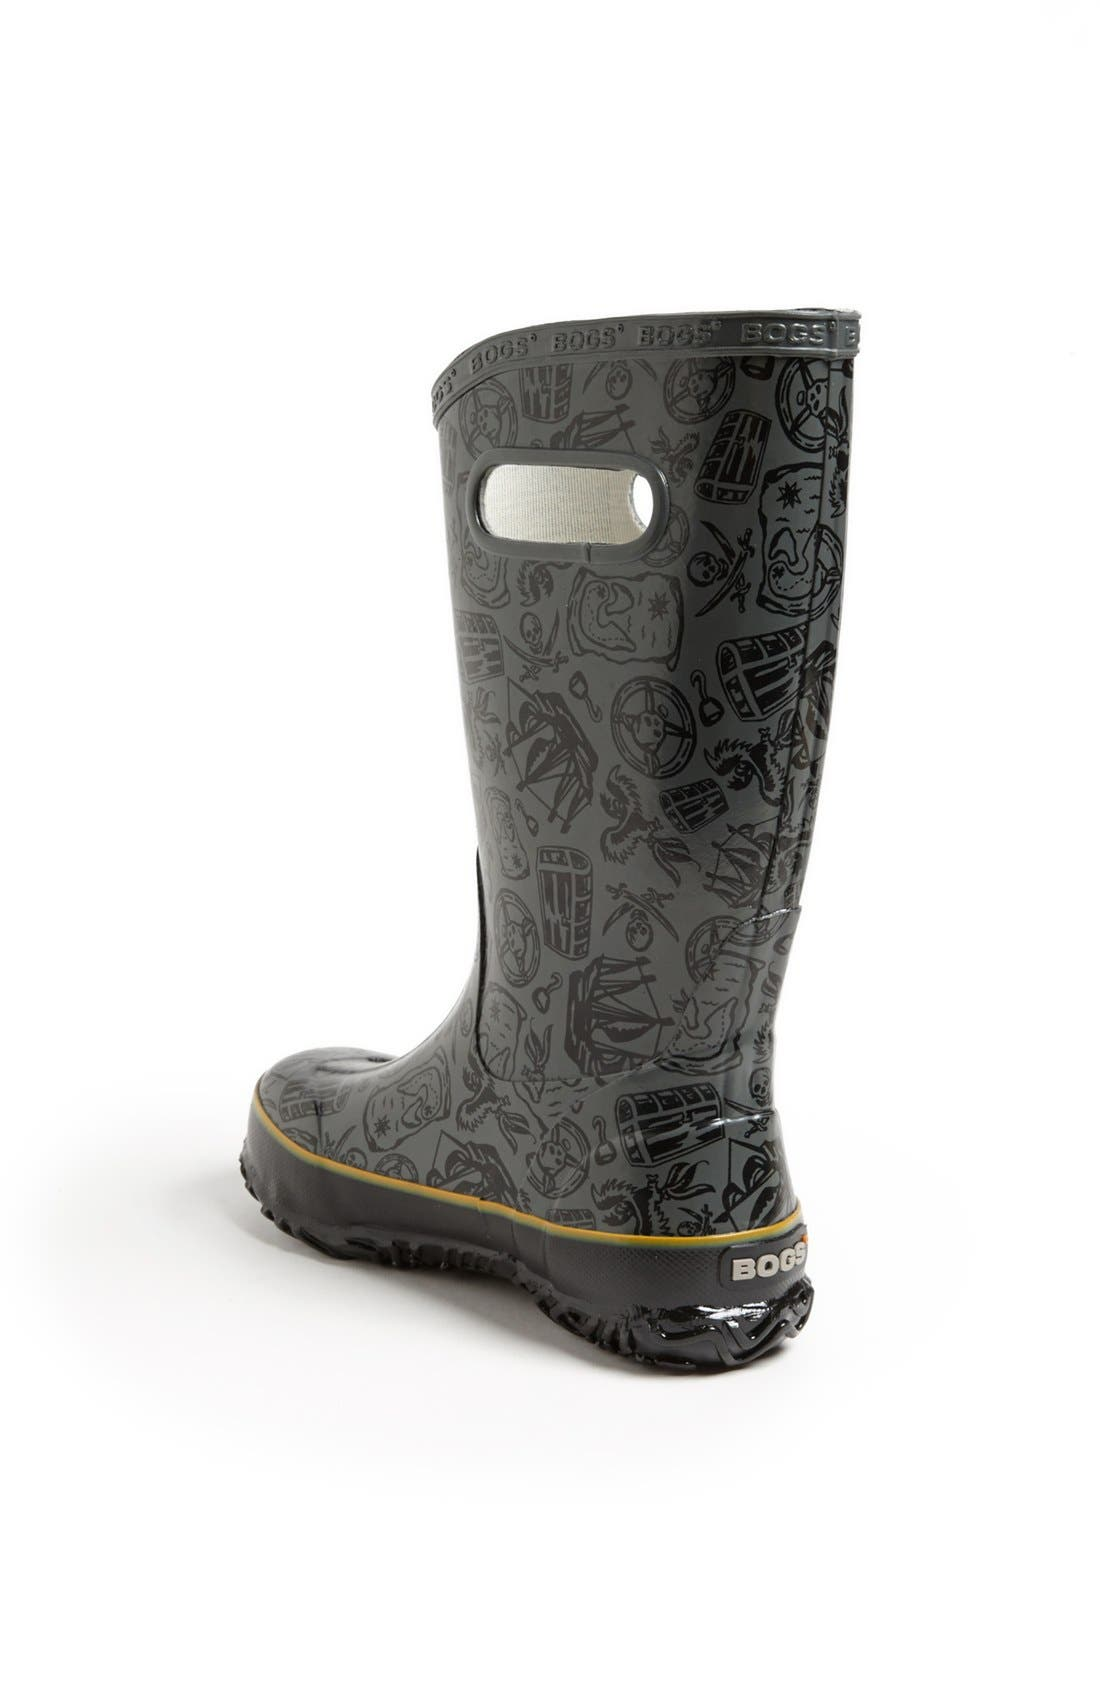 Alternate Image 2  - Bogs 'Pirate' Rain Boot (Walker, Toddler, Little Kid & Big Kid)